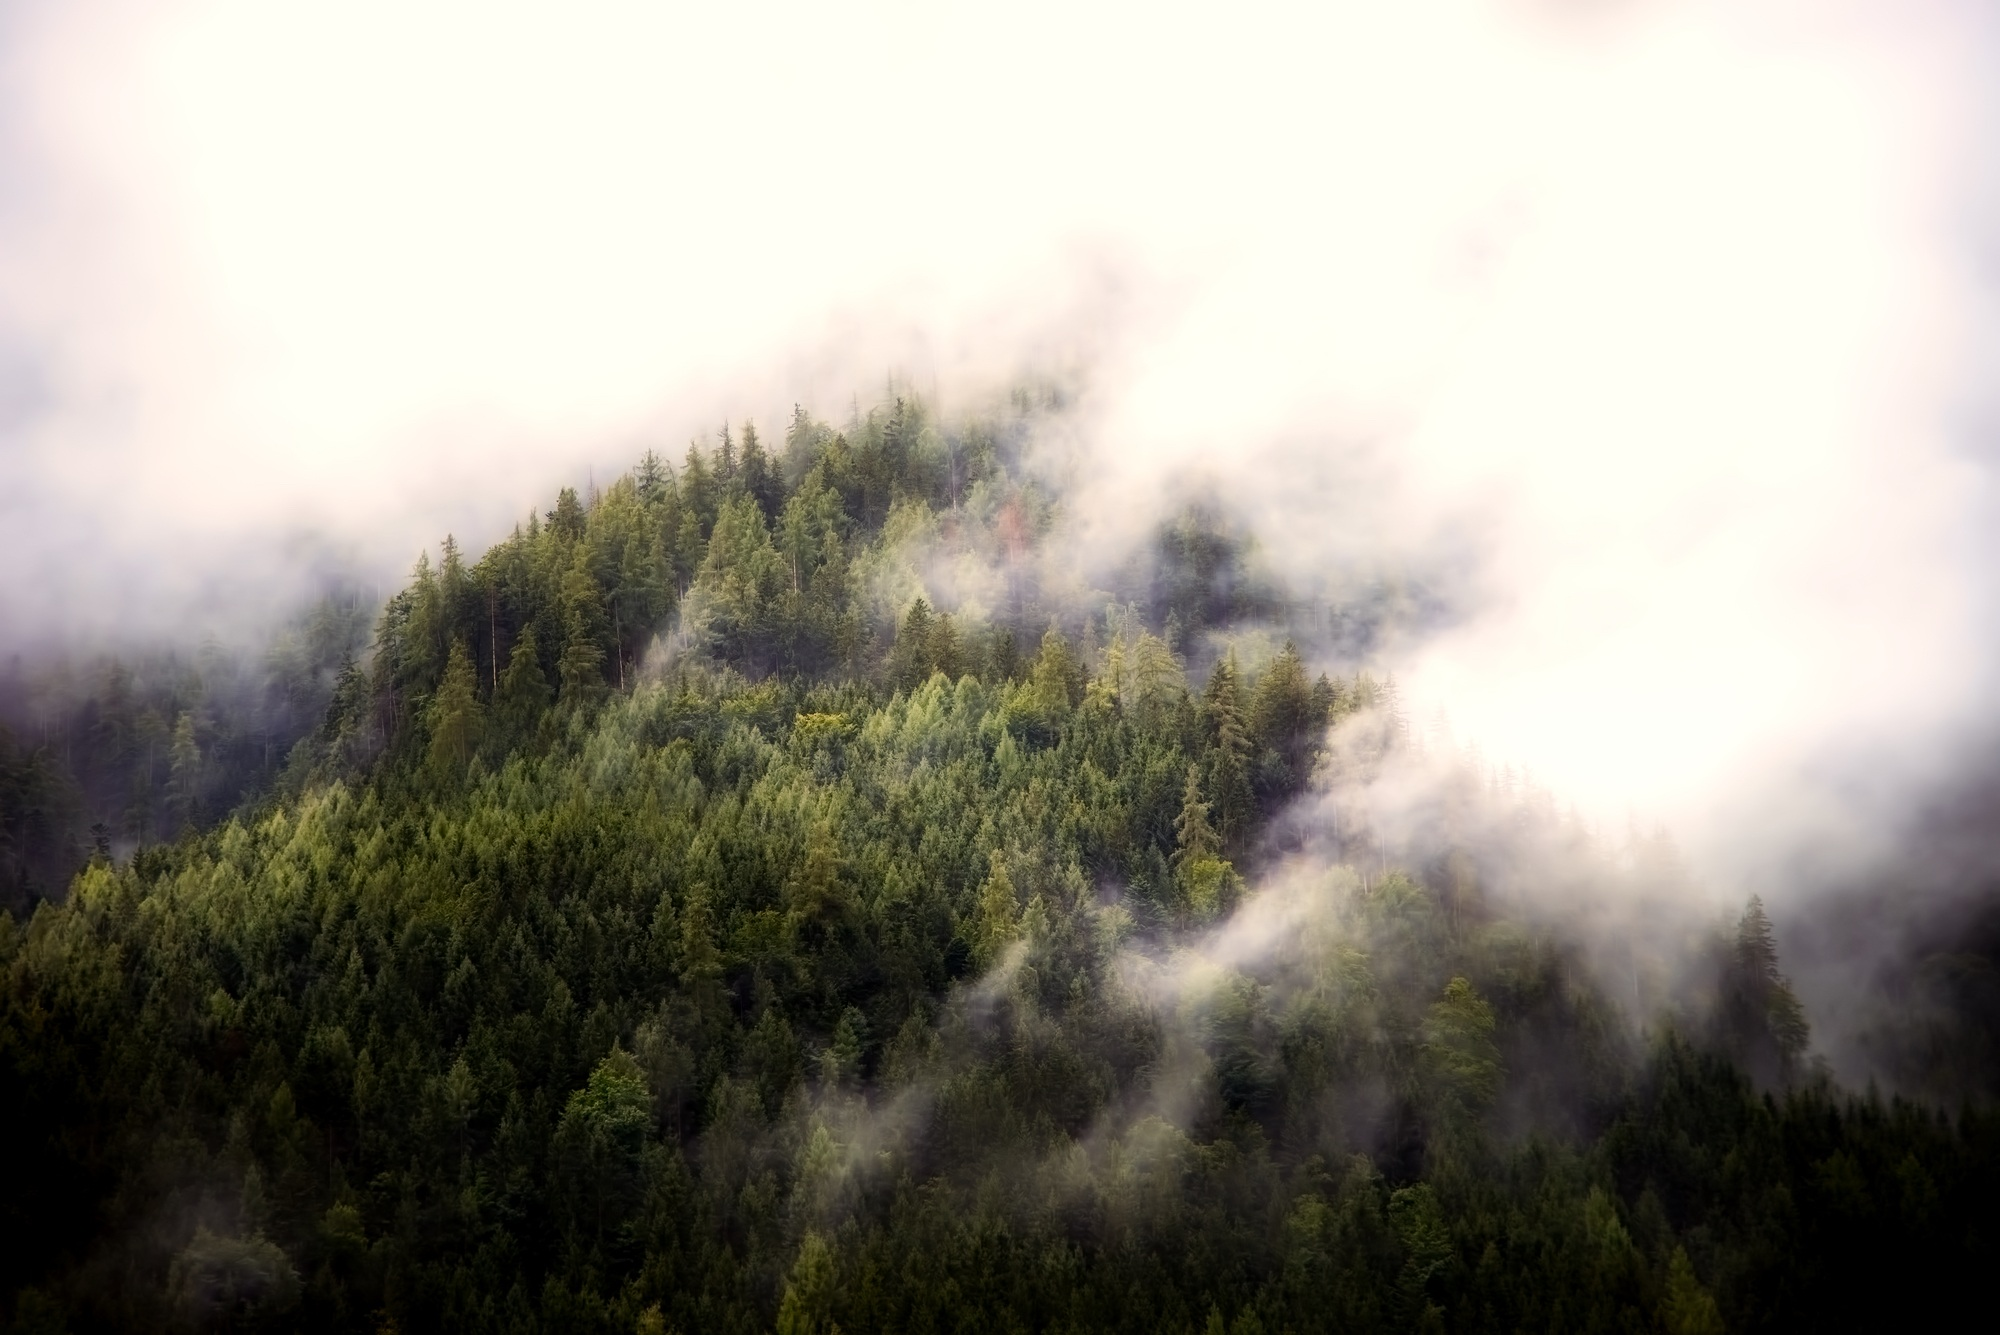 Fog, aerial view, forest, nature, trees